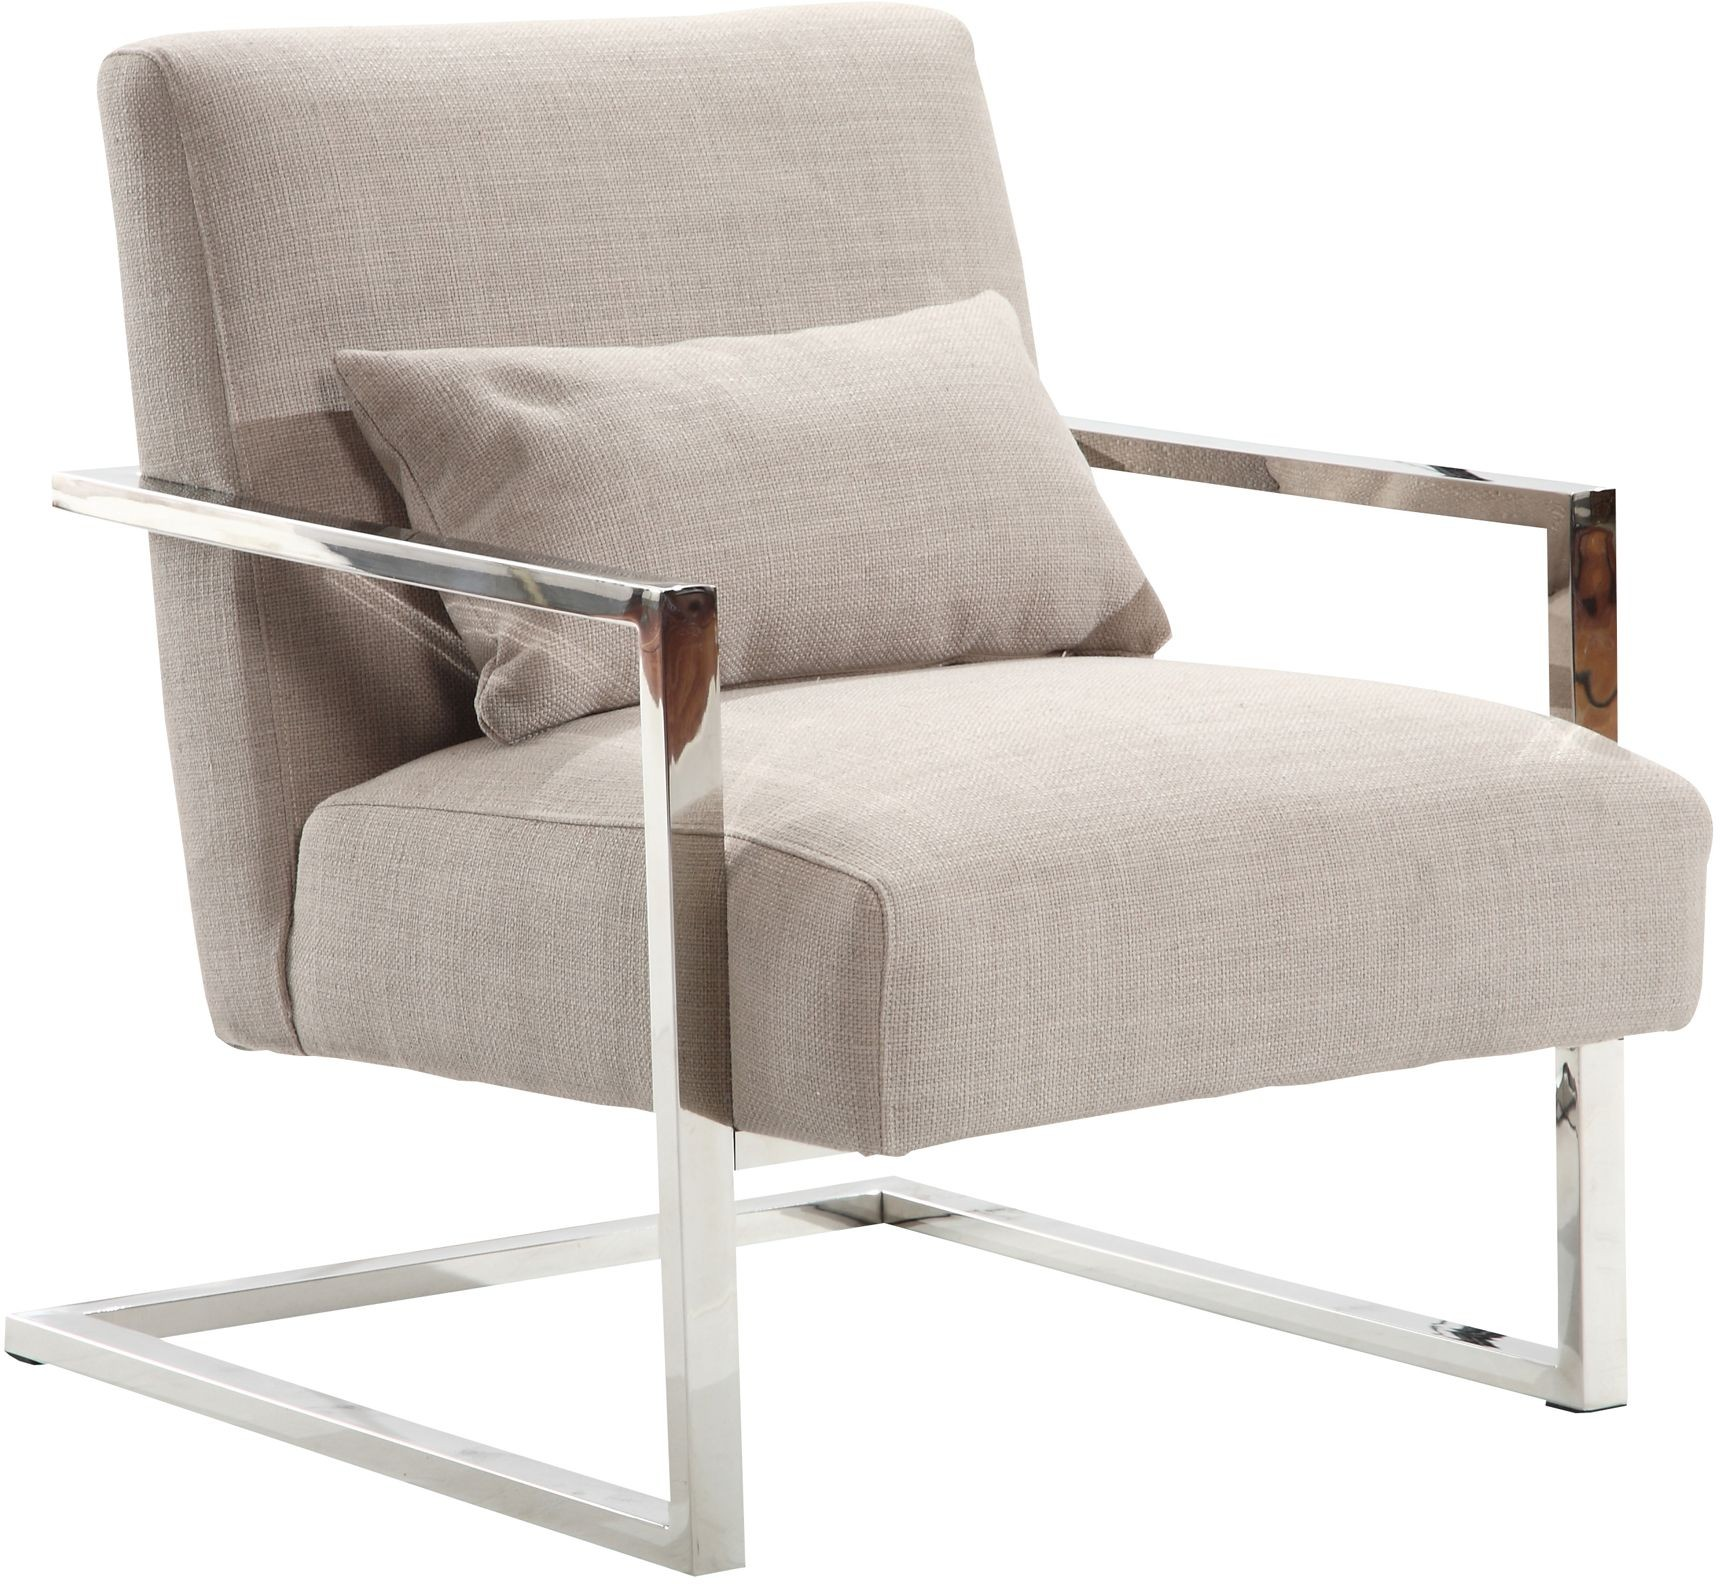 Accent Chairs Modern Skyline Modern Gray Linen And Steel Accent Chair From